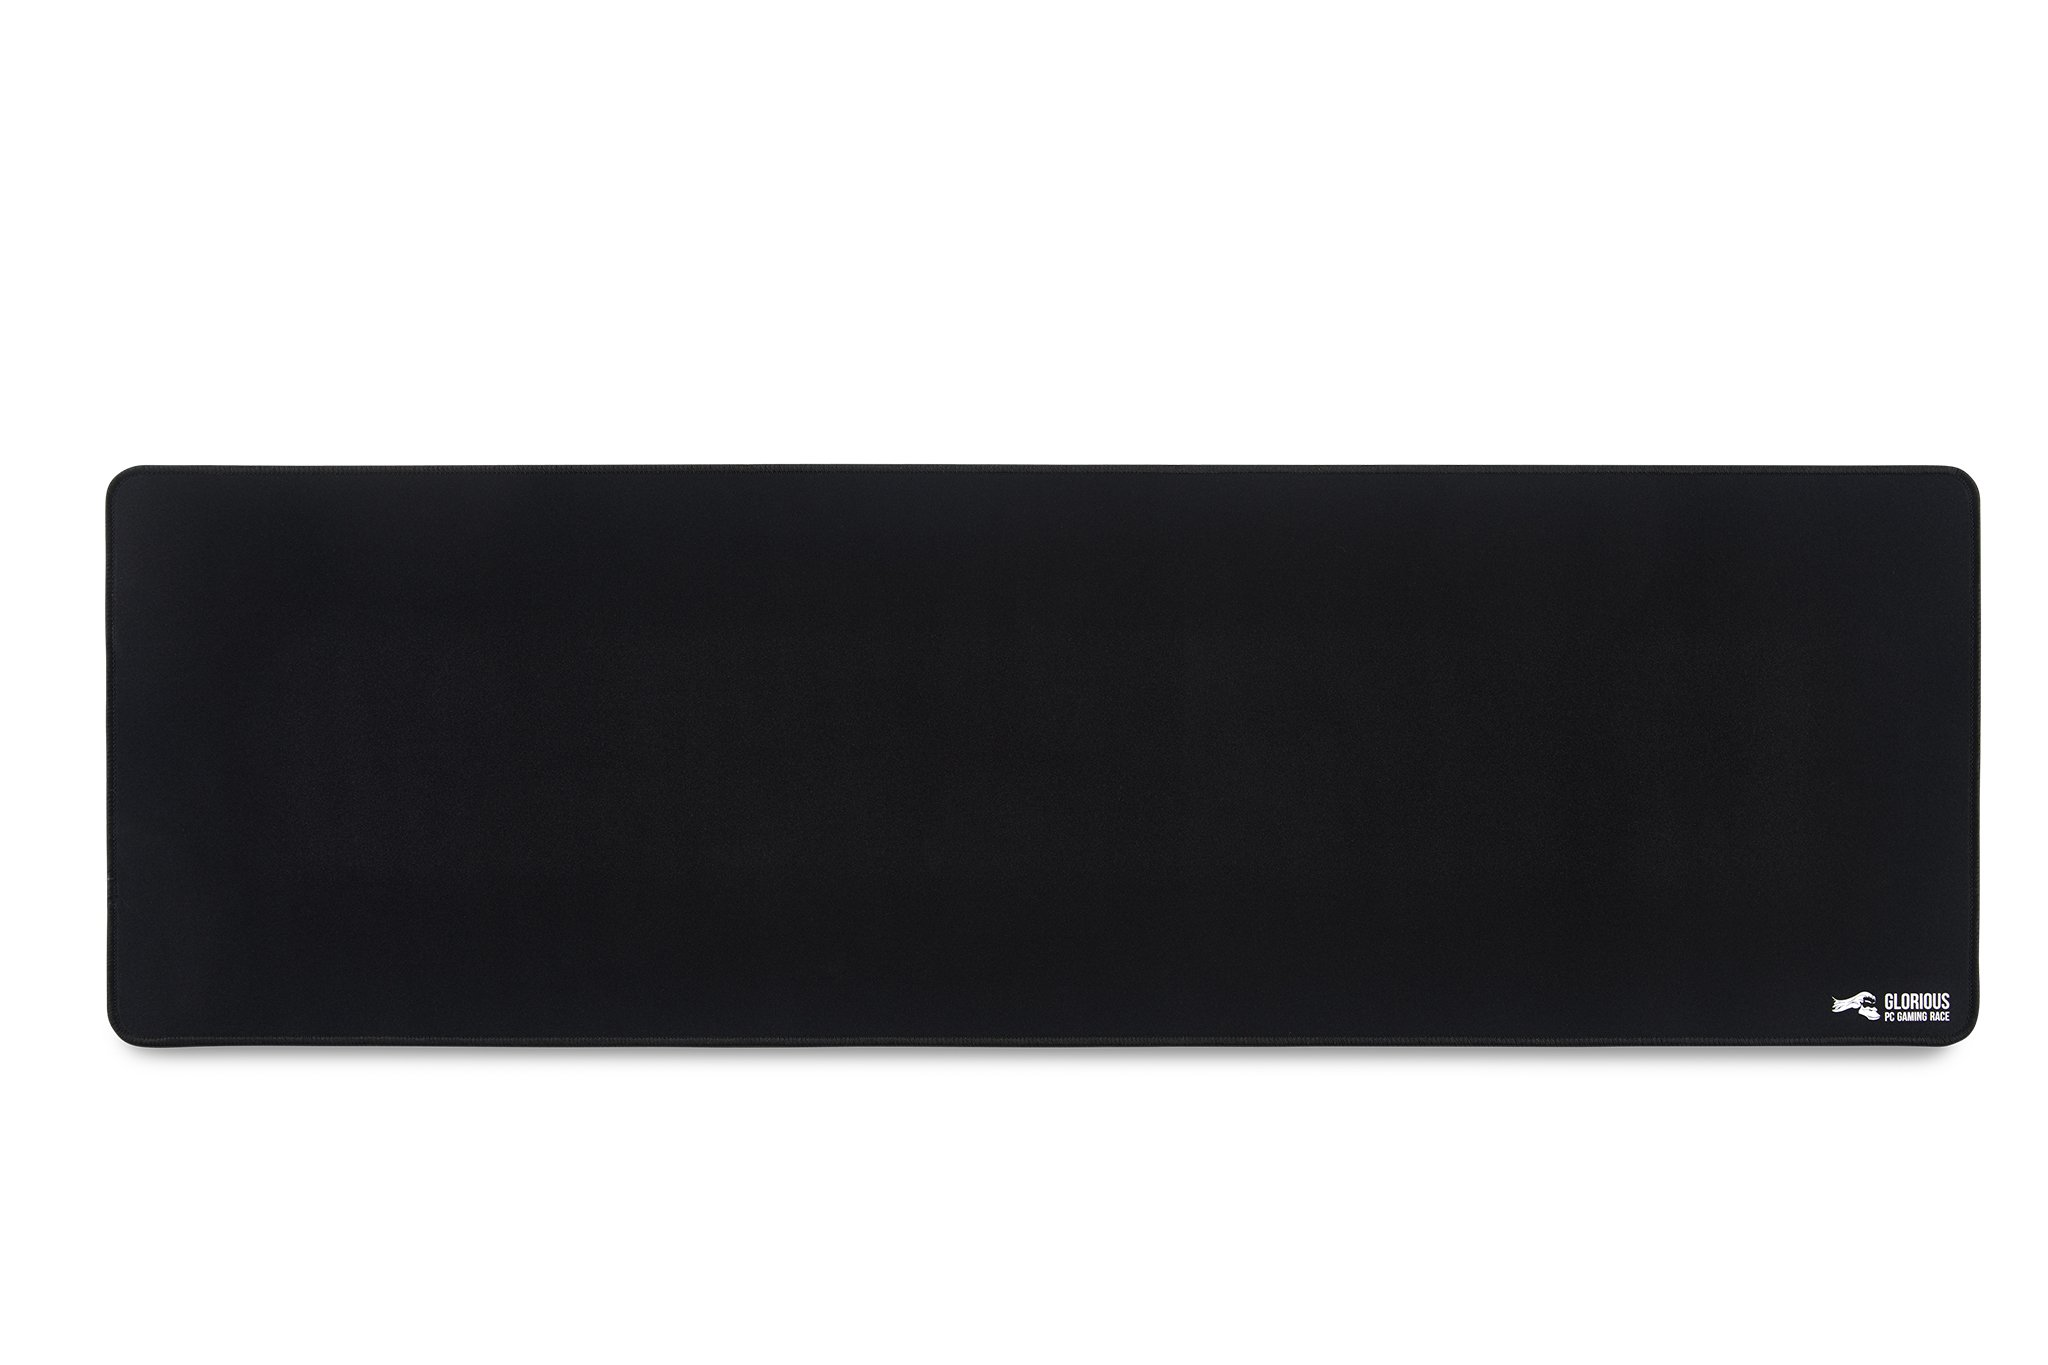 """Glorious Extended Gaming Mouse Pad/Mat - Long Black Cloth Mousepad, Stitched Edges   36x11"""" (G-E)"""